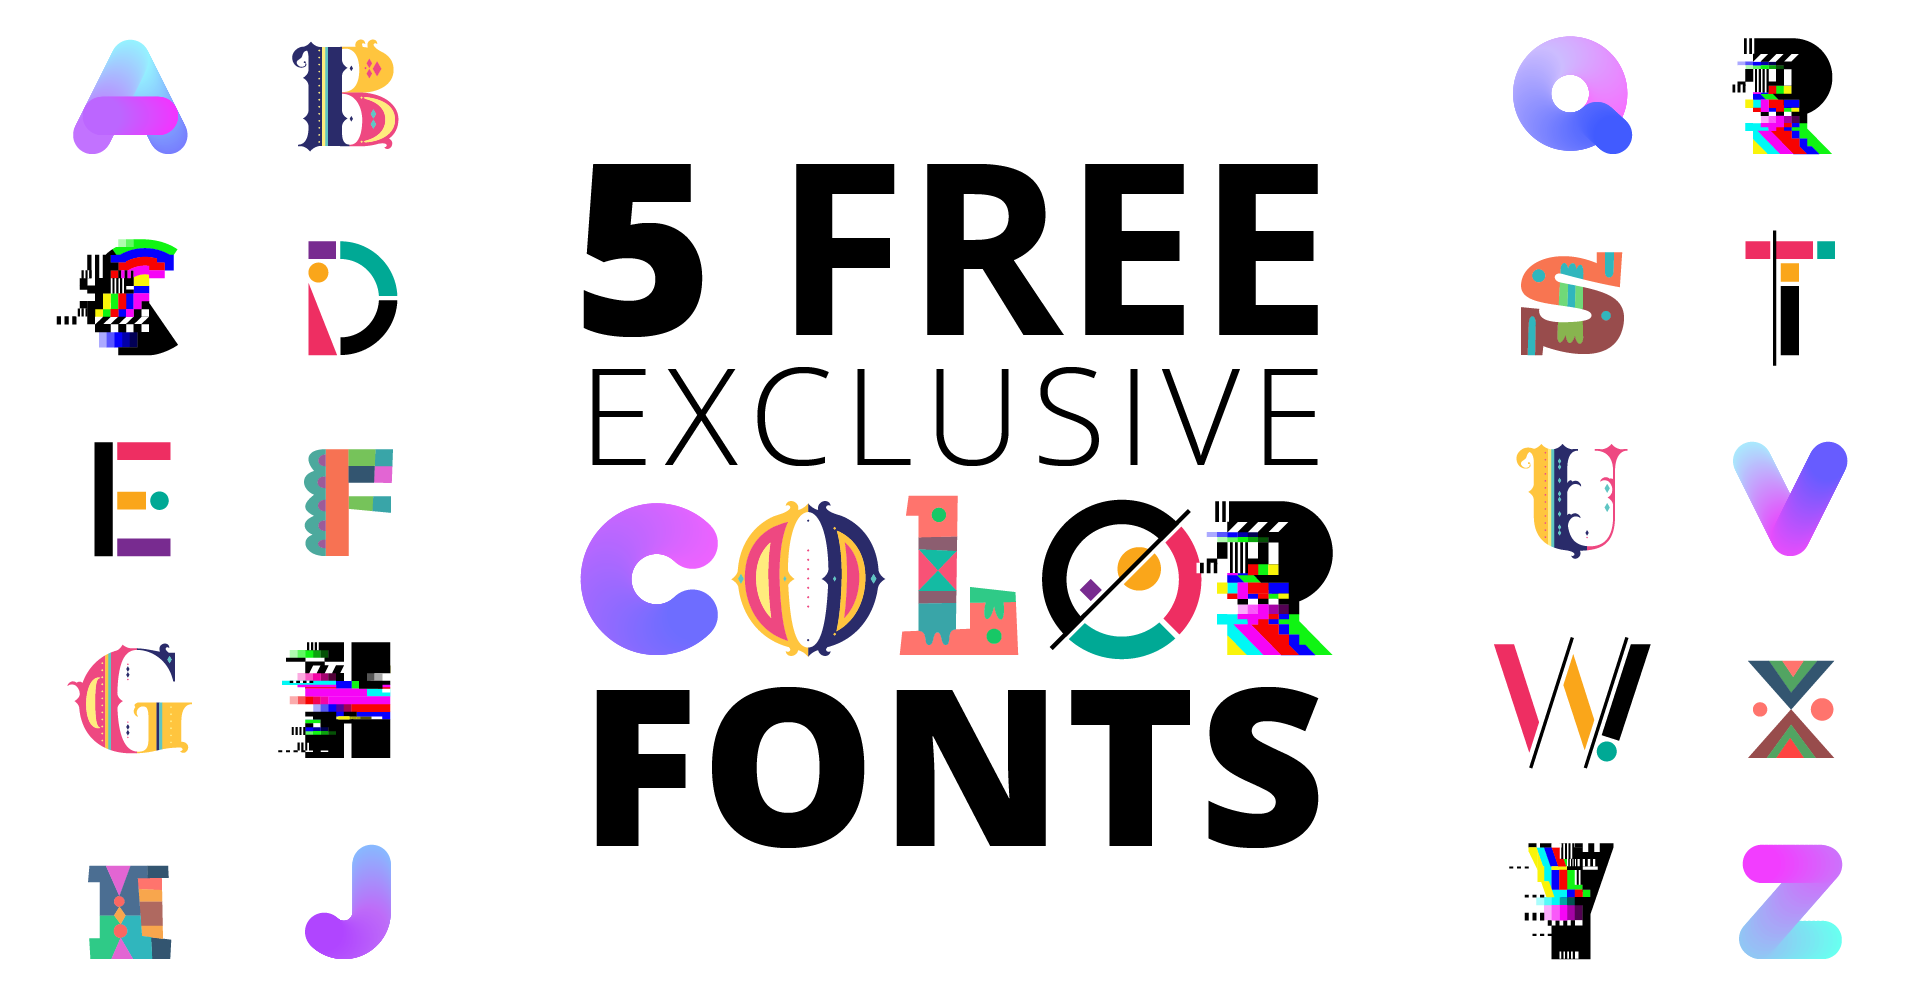 5 FREE color fonts by 5 FREE spirited minds – What\'s new at Fontself?